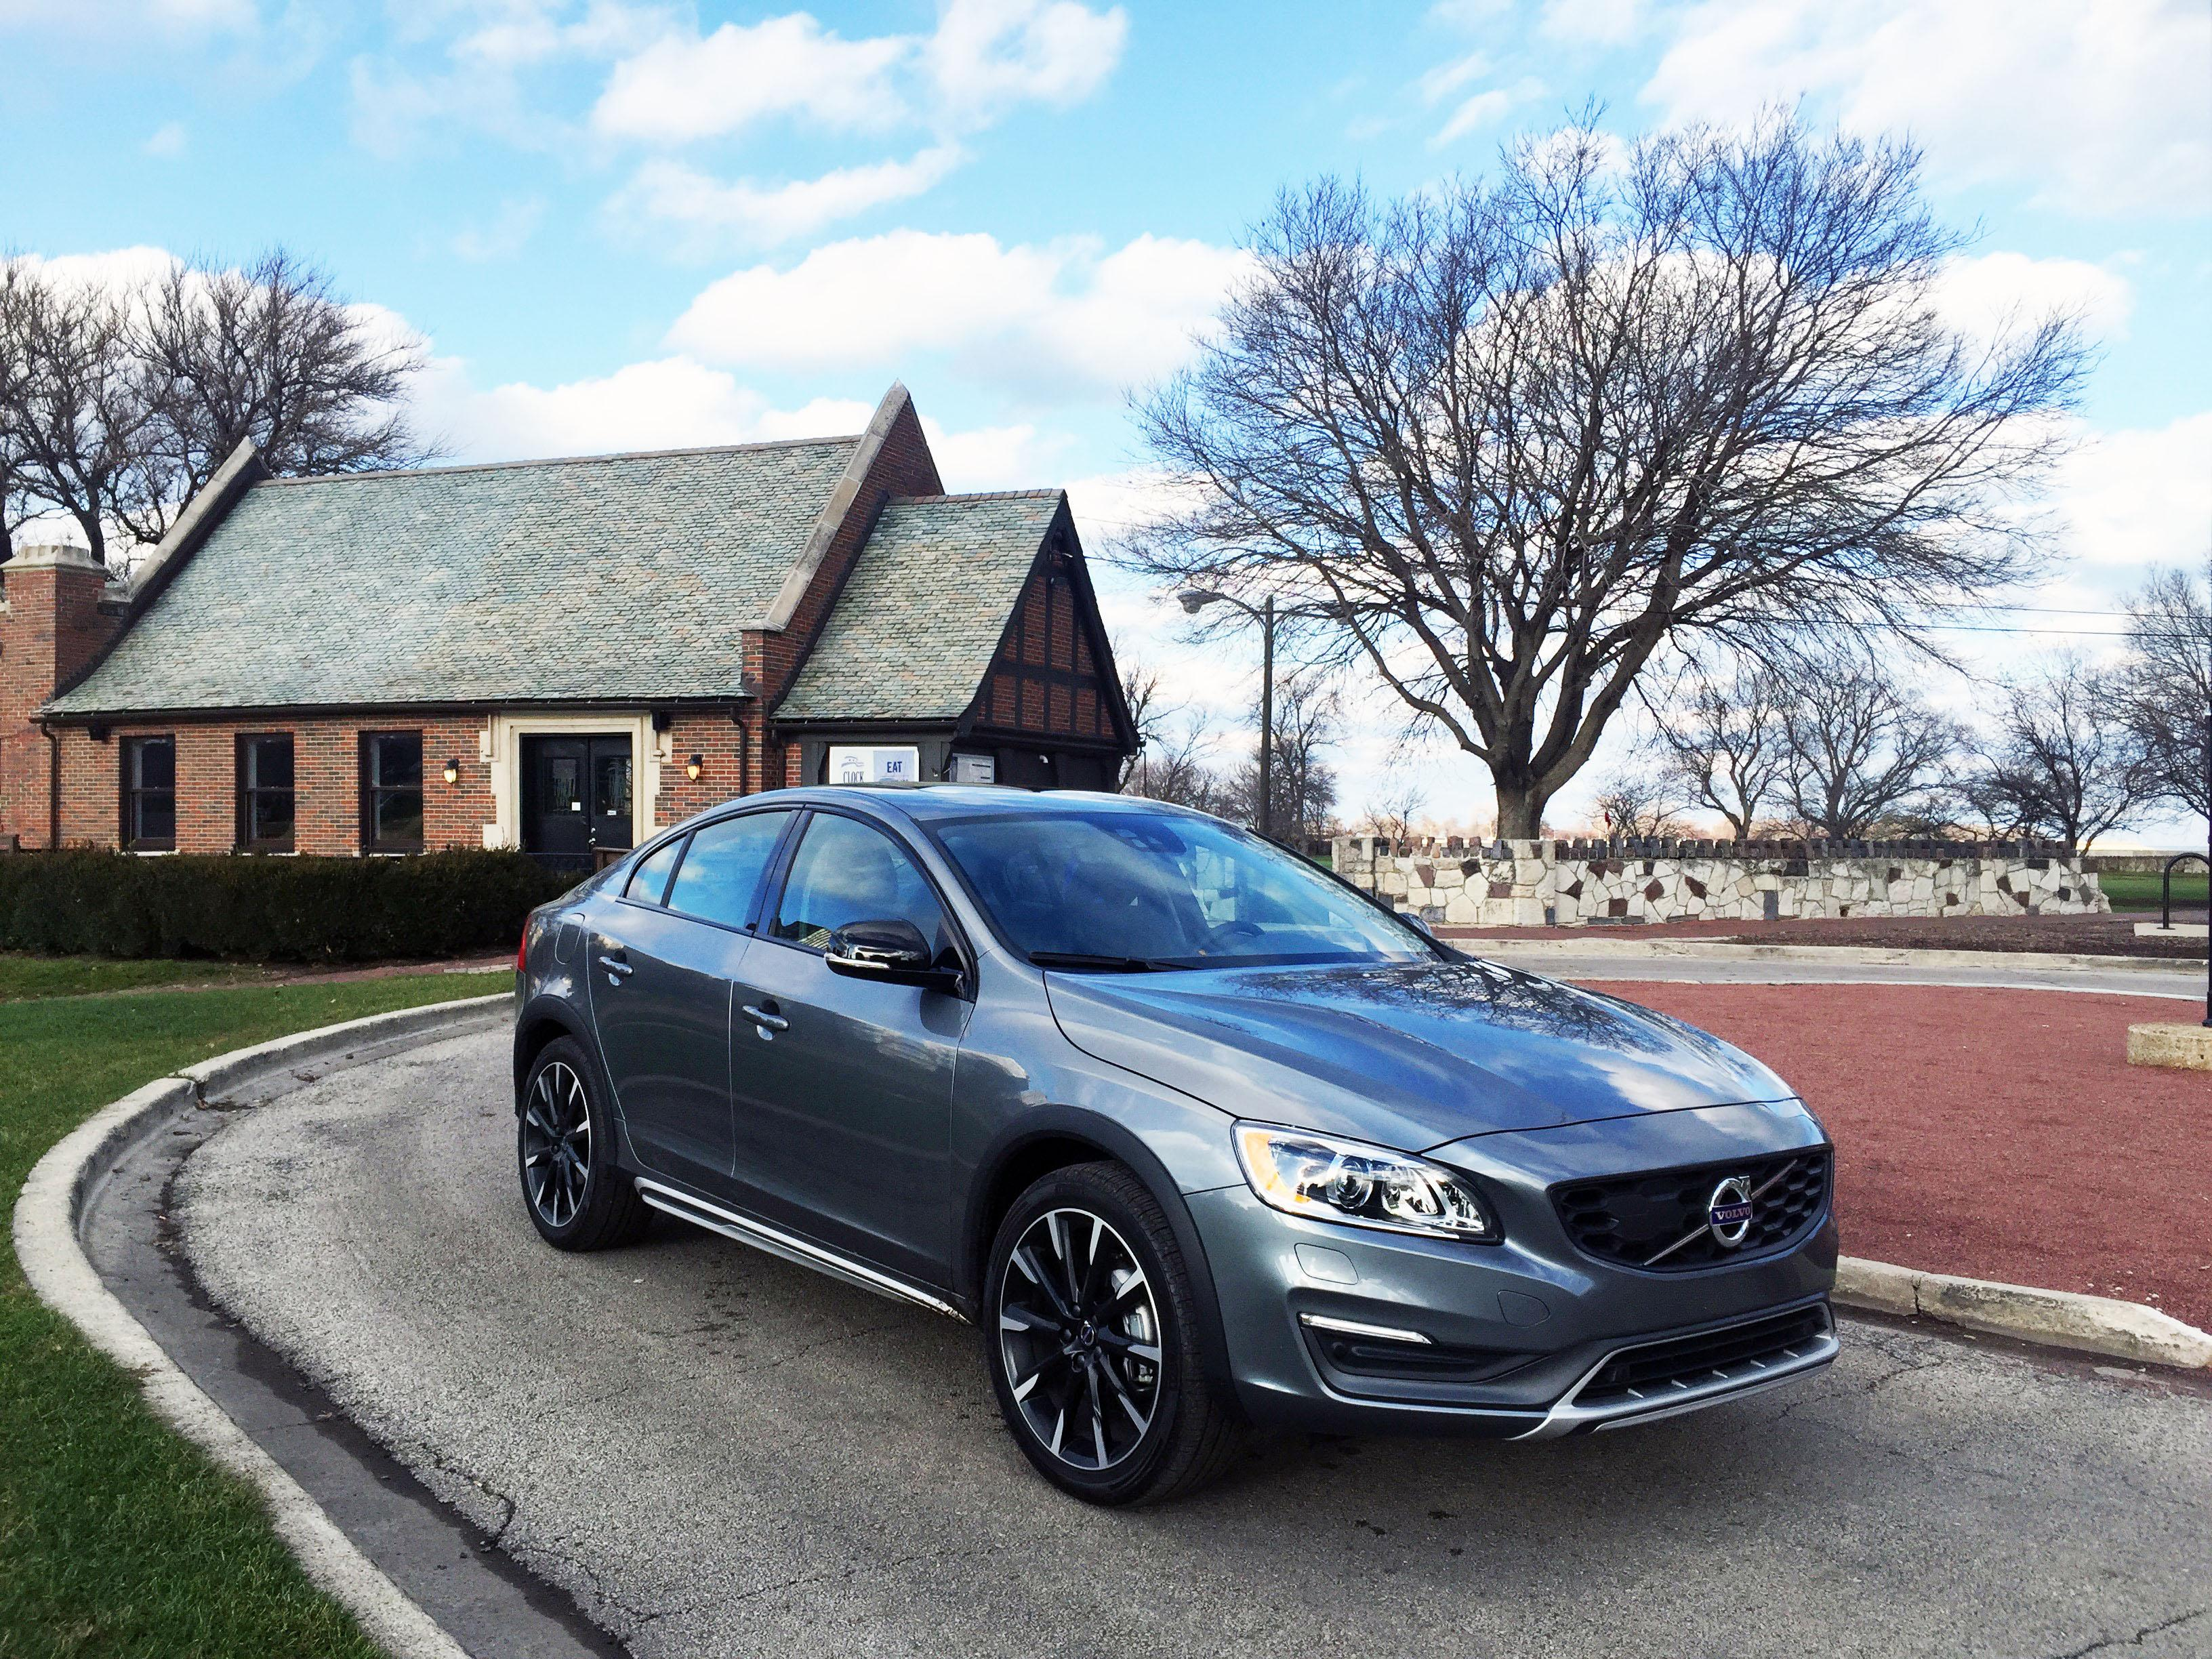 2017 volvo s60 cross country red 200 interior and exterior images. Black Bedroom Furniture Sets. Home Design Ideas